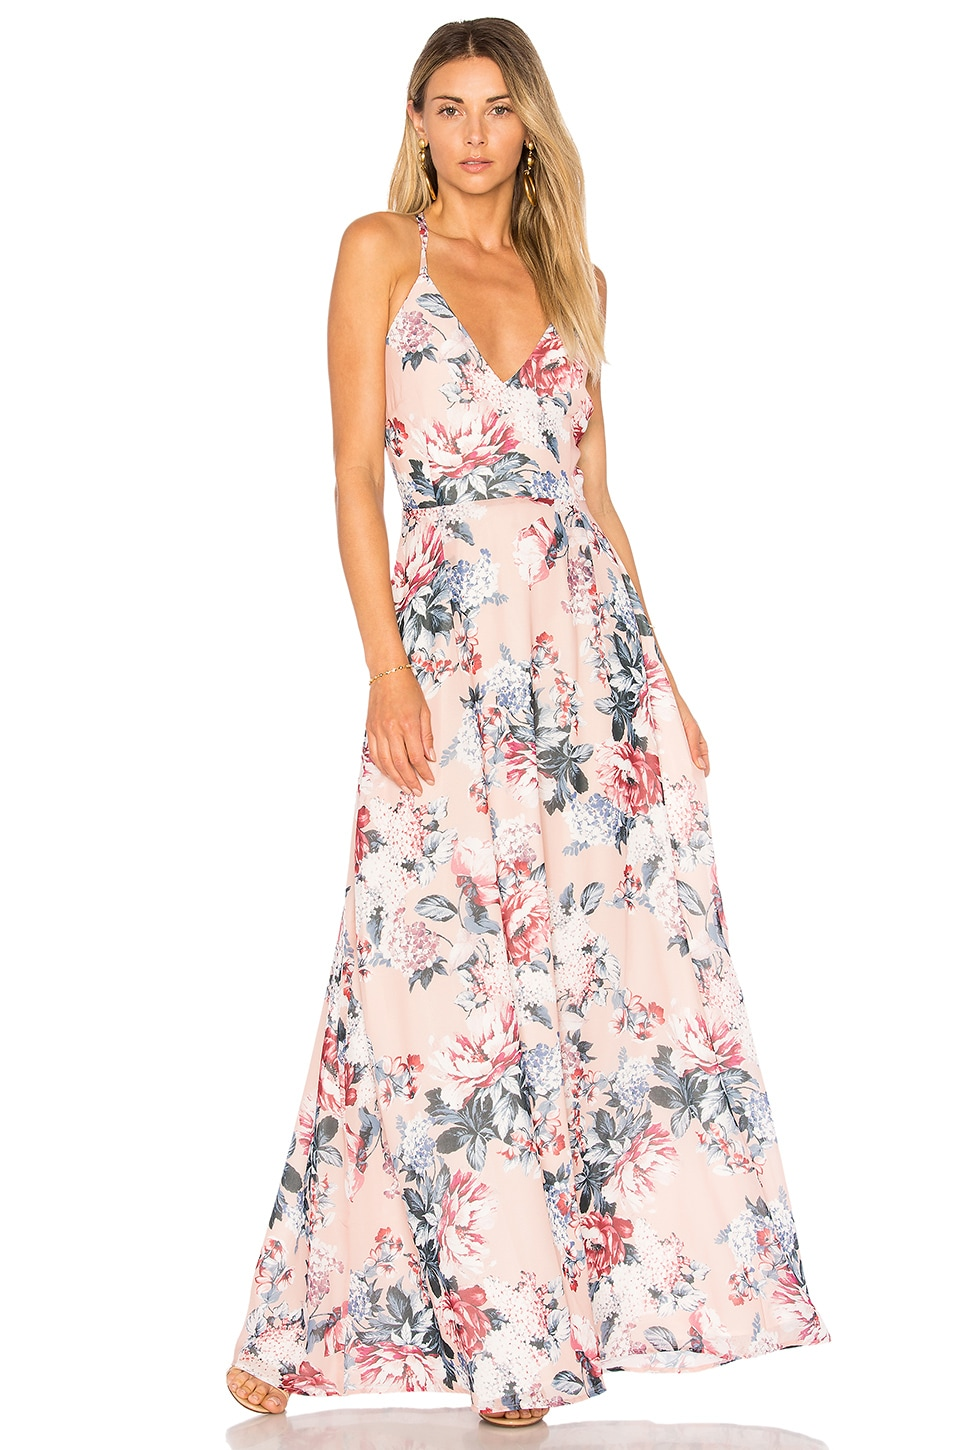 BB Dakota RSVP By BB Dakota Chantelle Dress In Vintage Rose